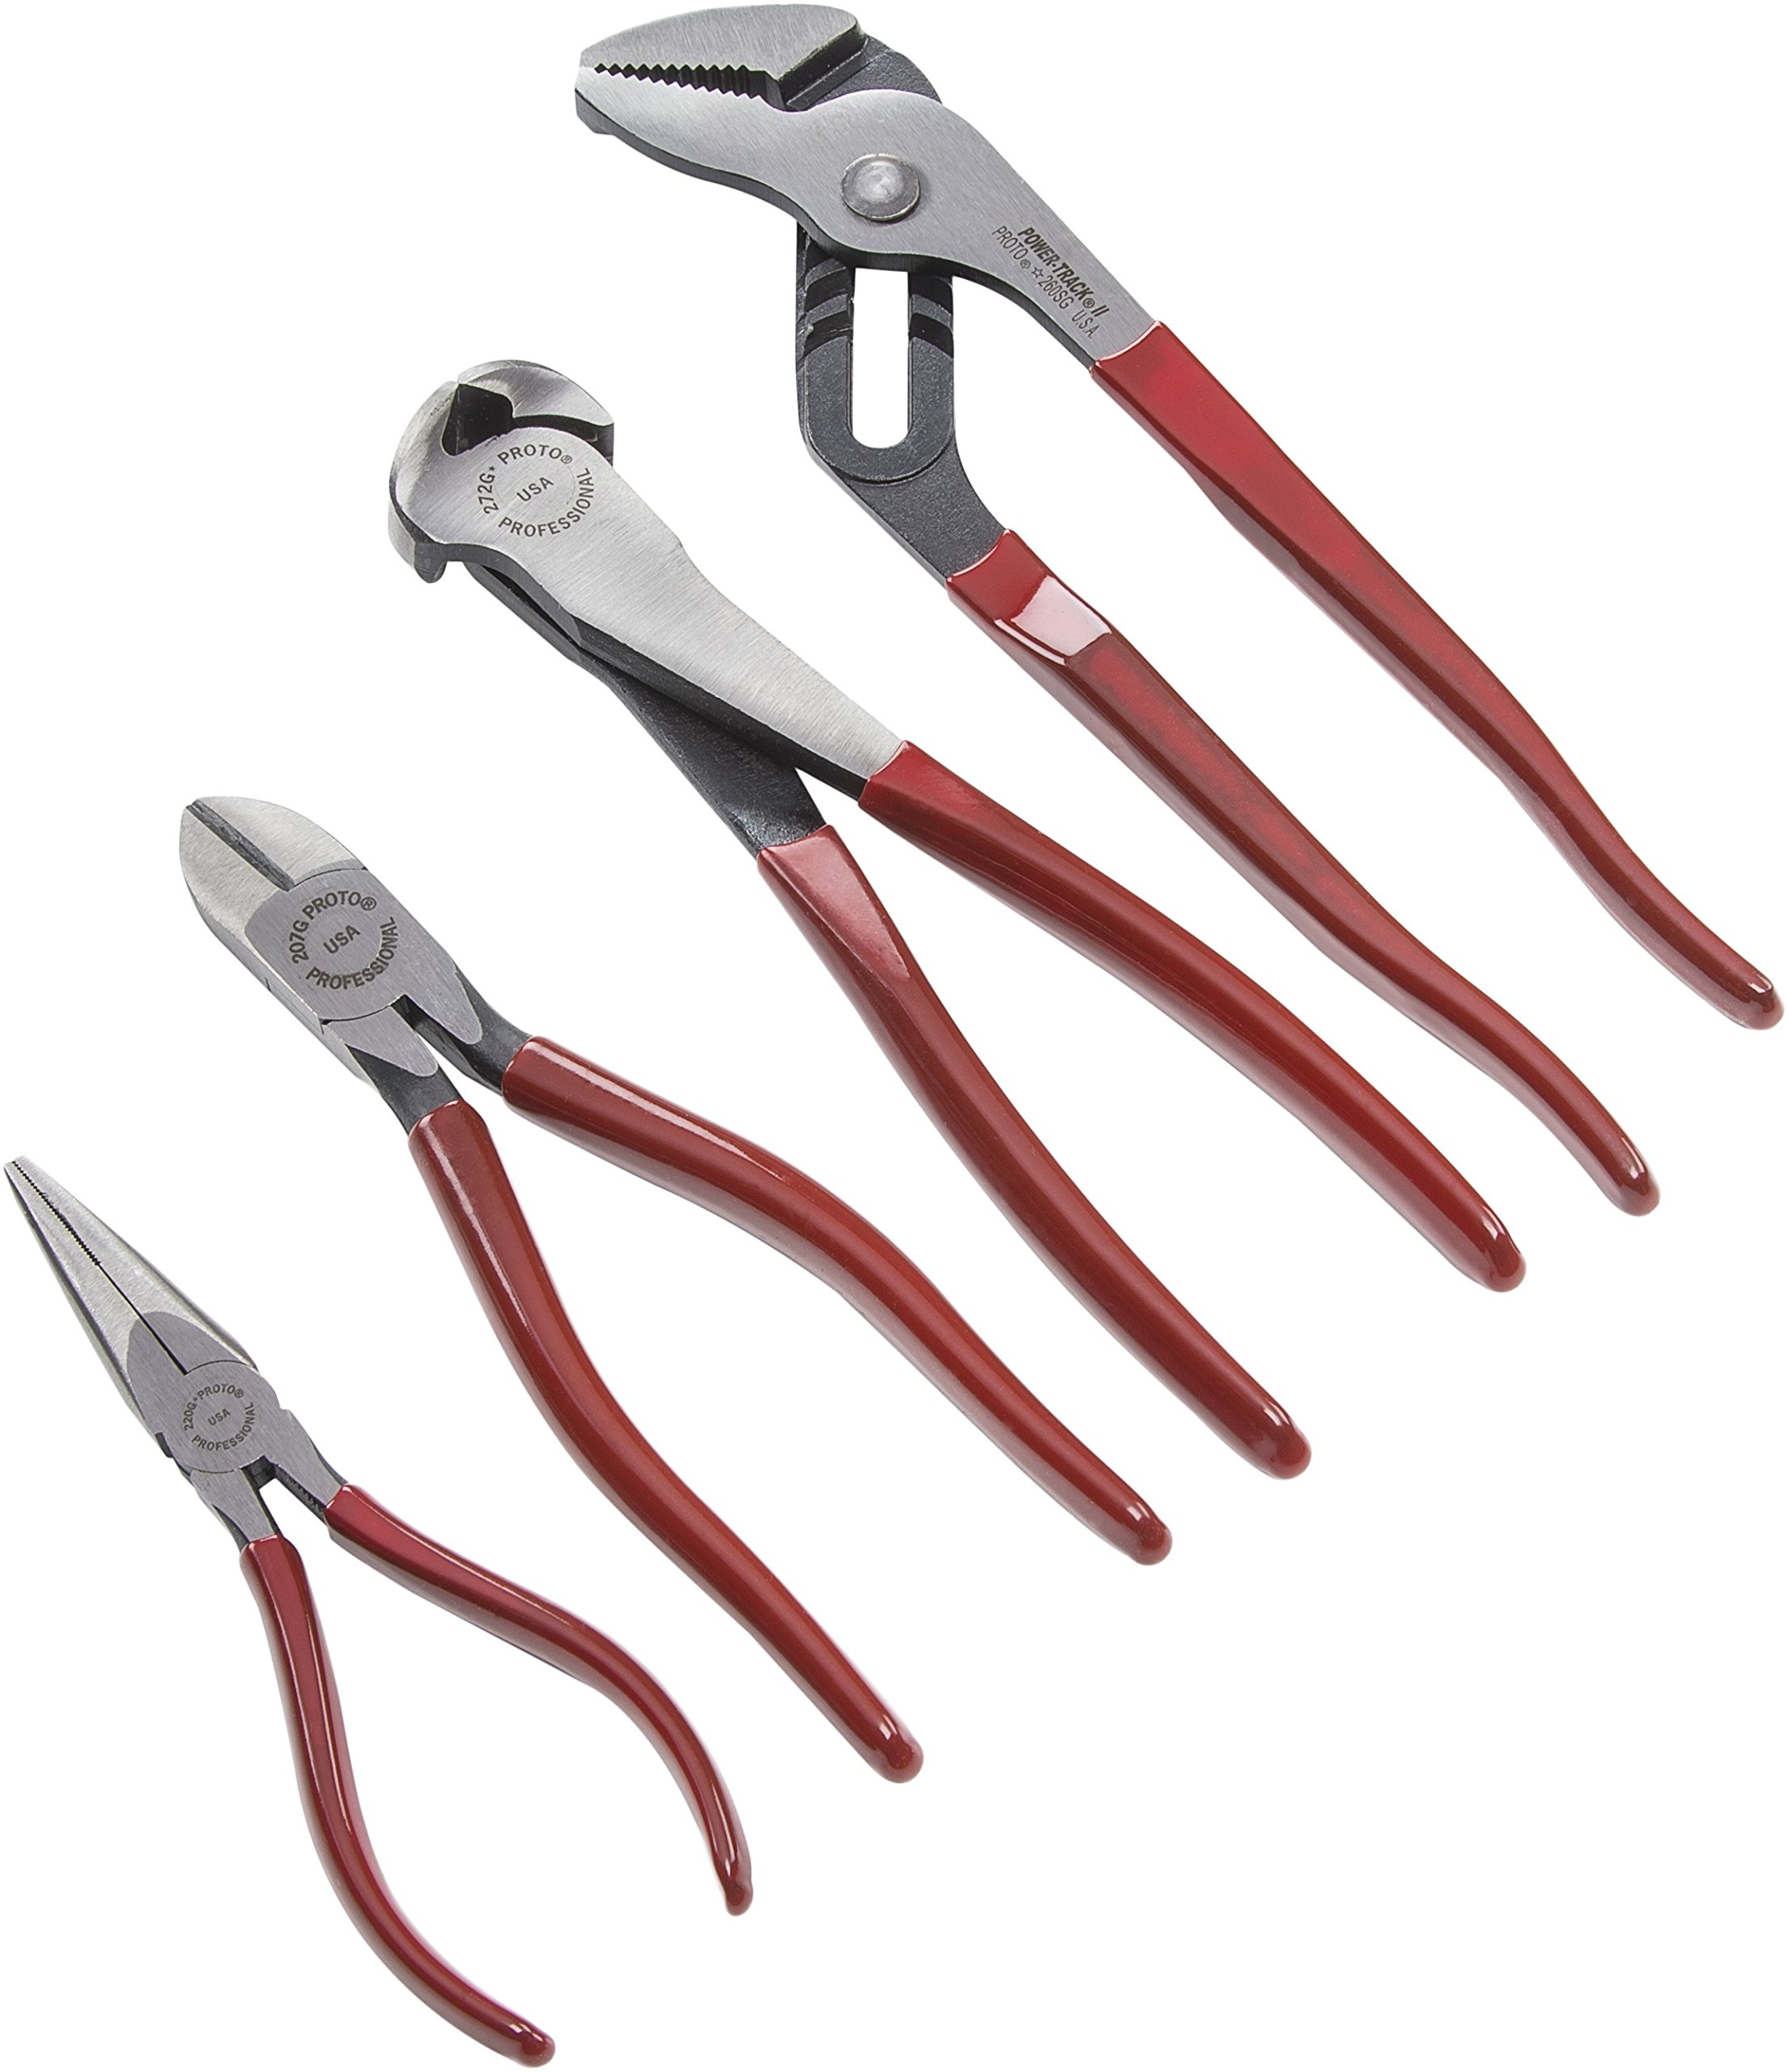 Stanley Proto J226GS Assorted Pliers Set (4-Piece)